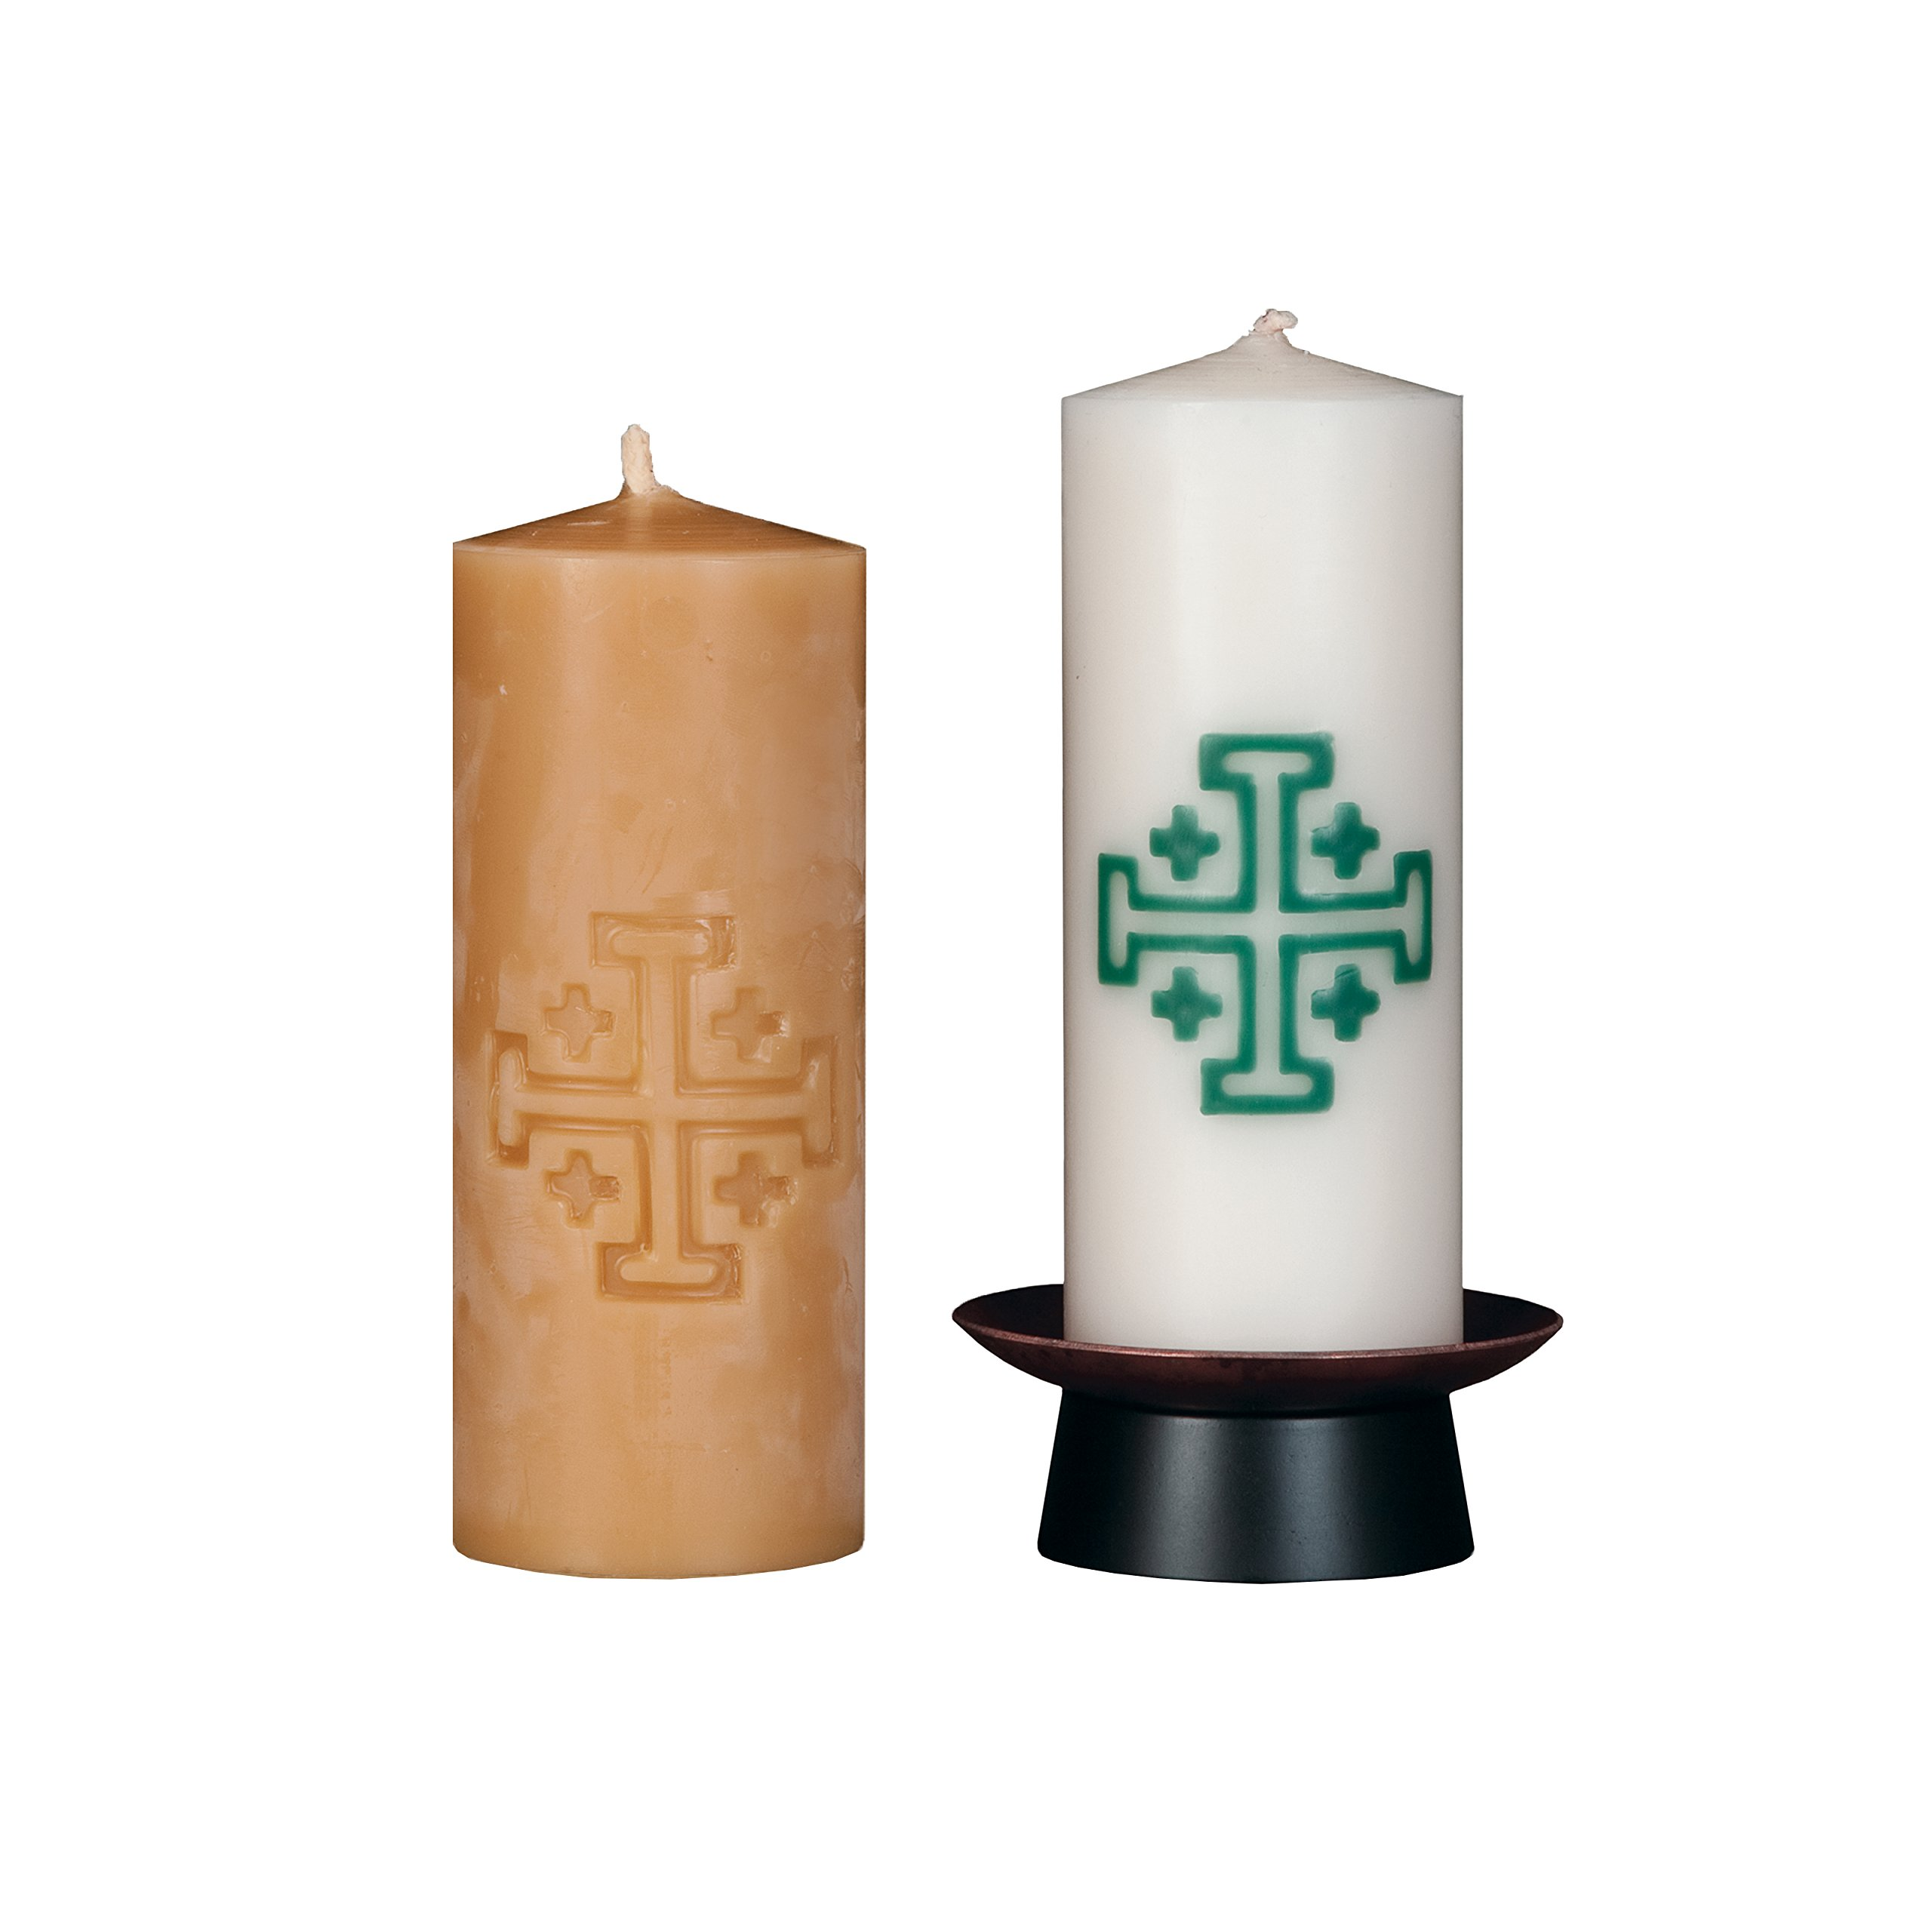 Beeswax Christos™ Candle Set; 2-1/2'' x 6'' candles with base; Jerusalem™ design in green. Handcrafted in New England. Made in America. by Marklin Candle